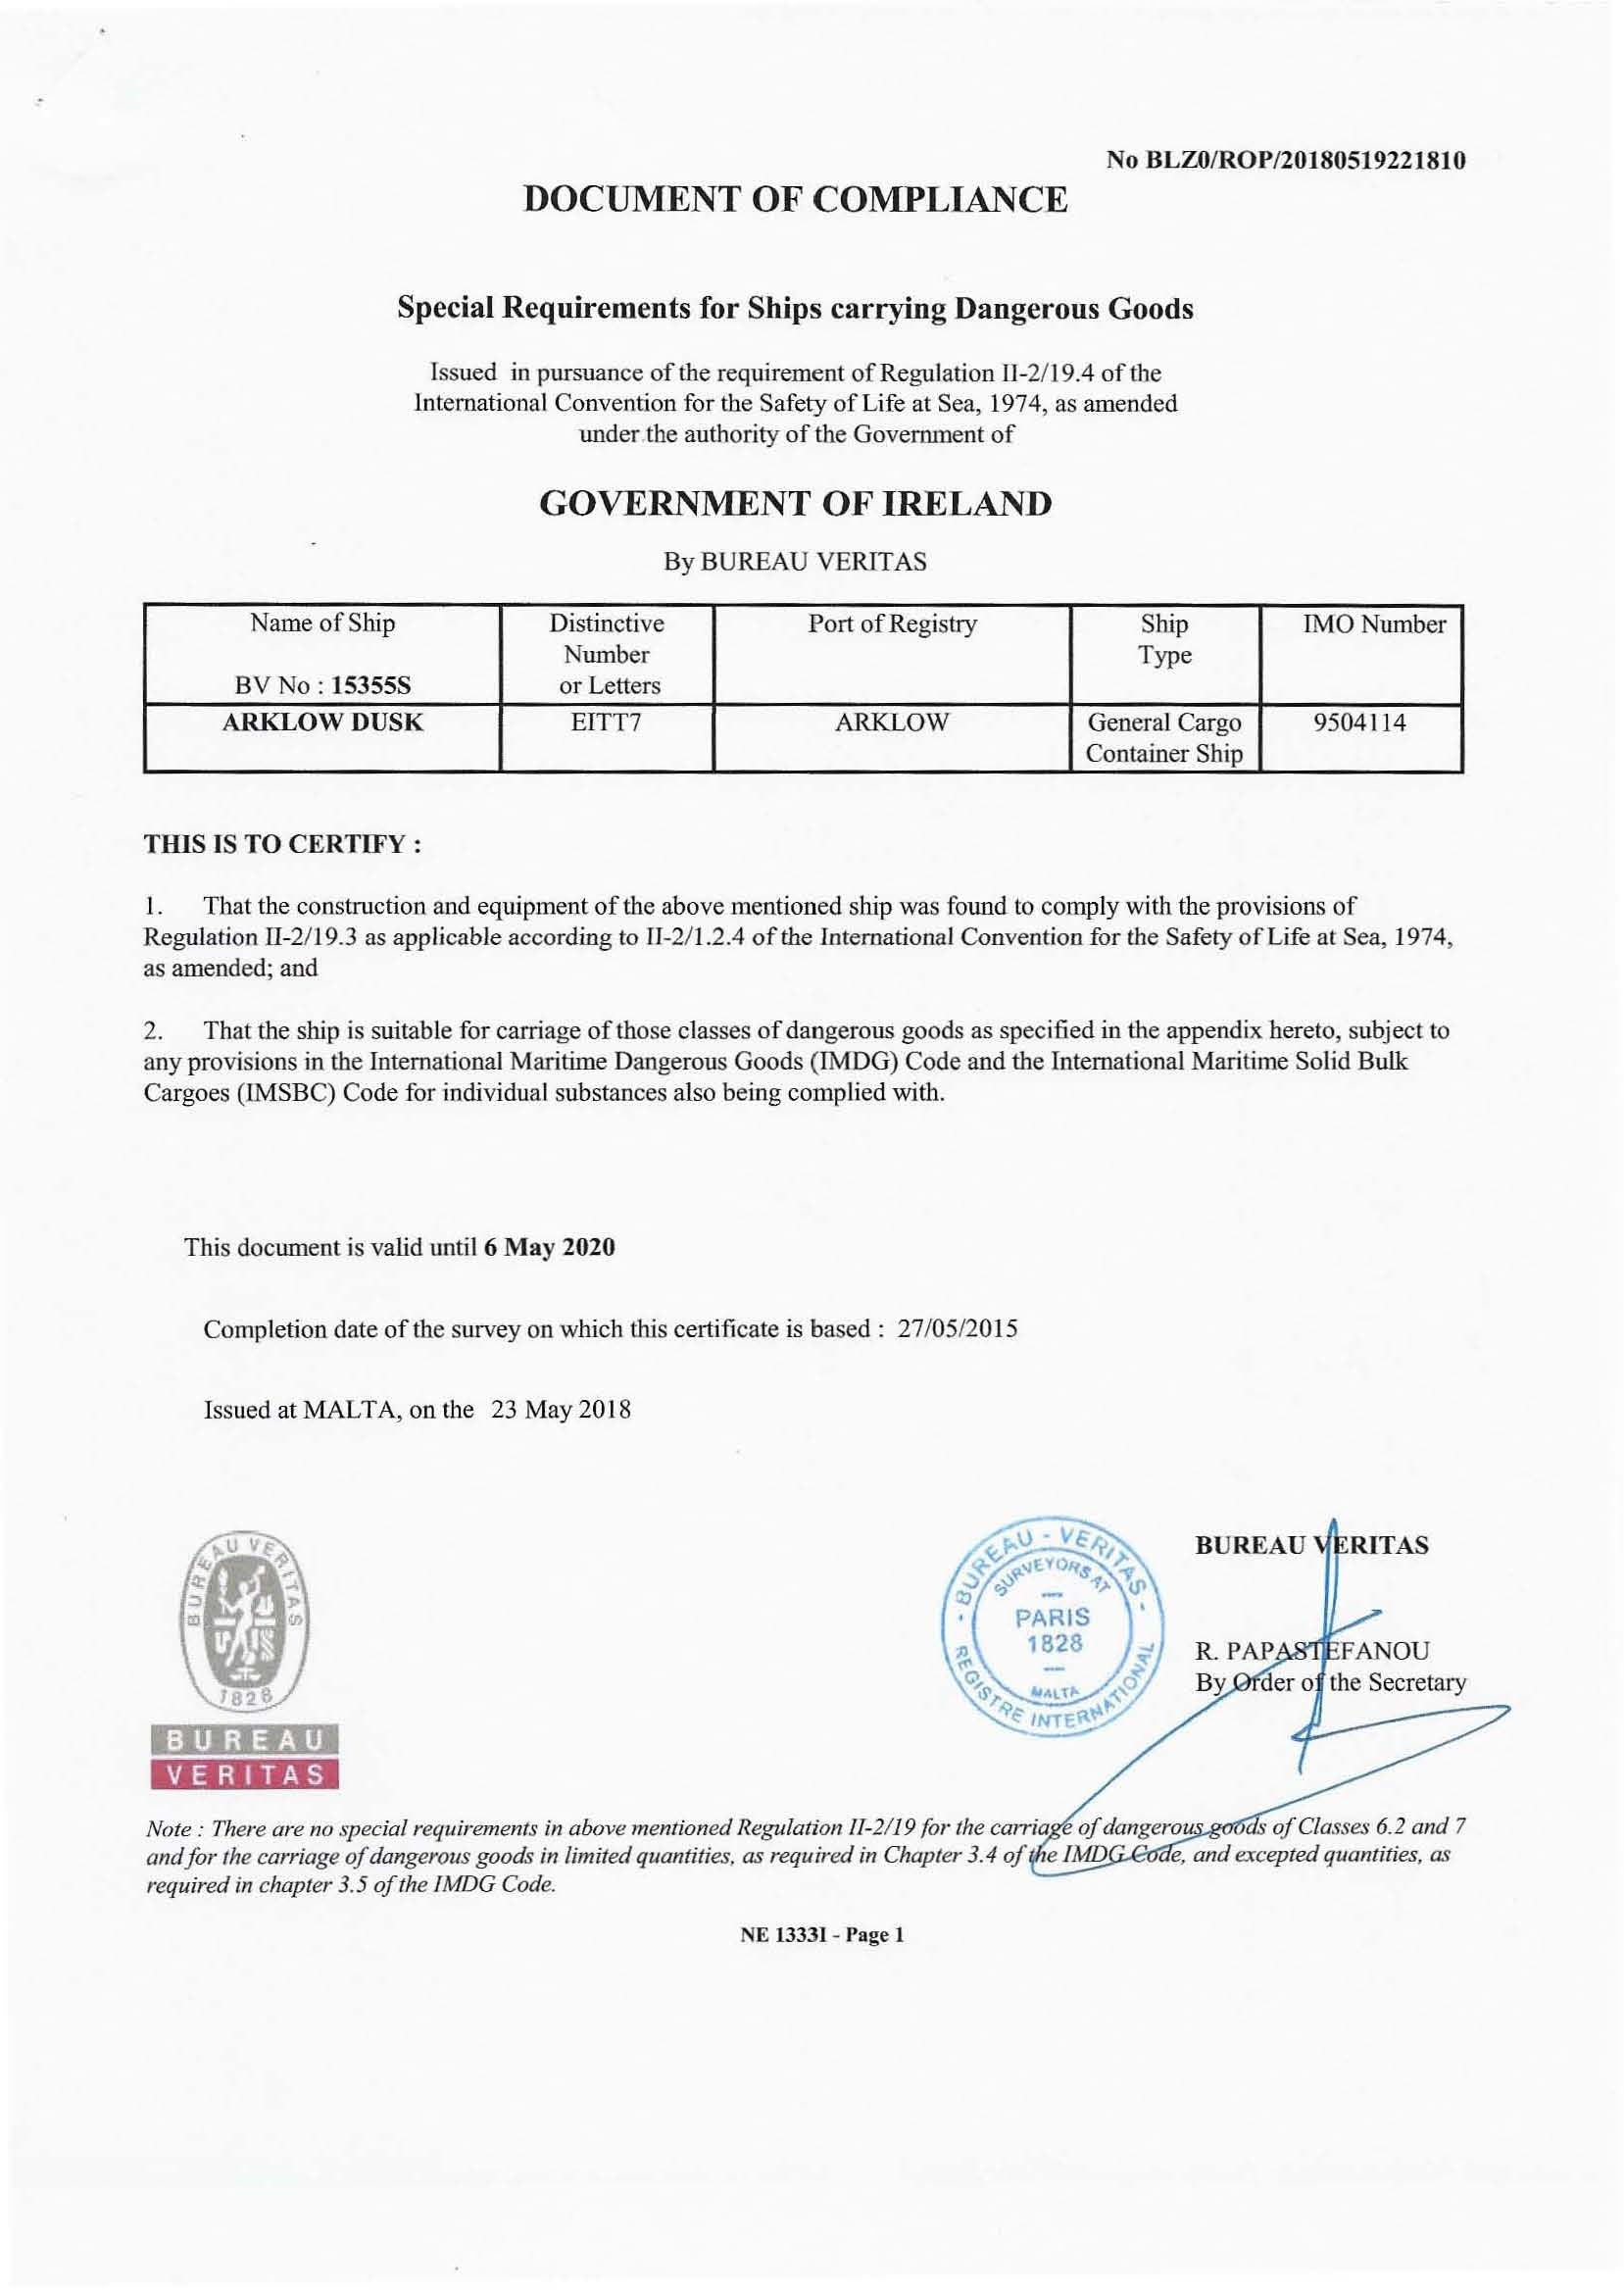 document of compliance for carrying dangerous goods